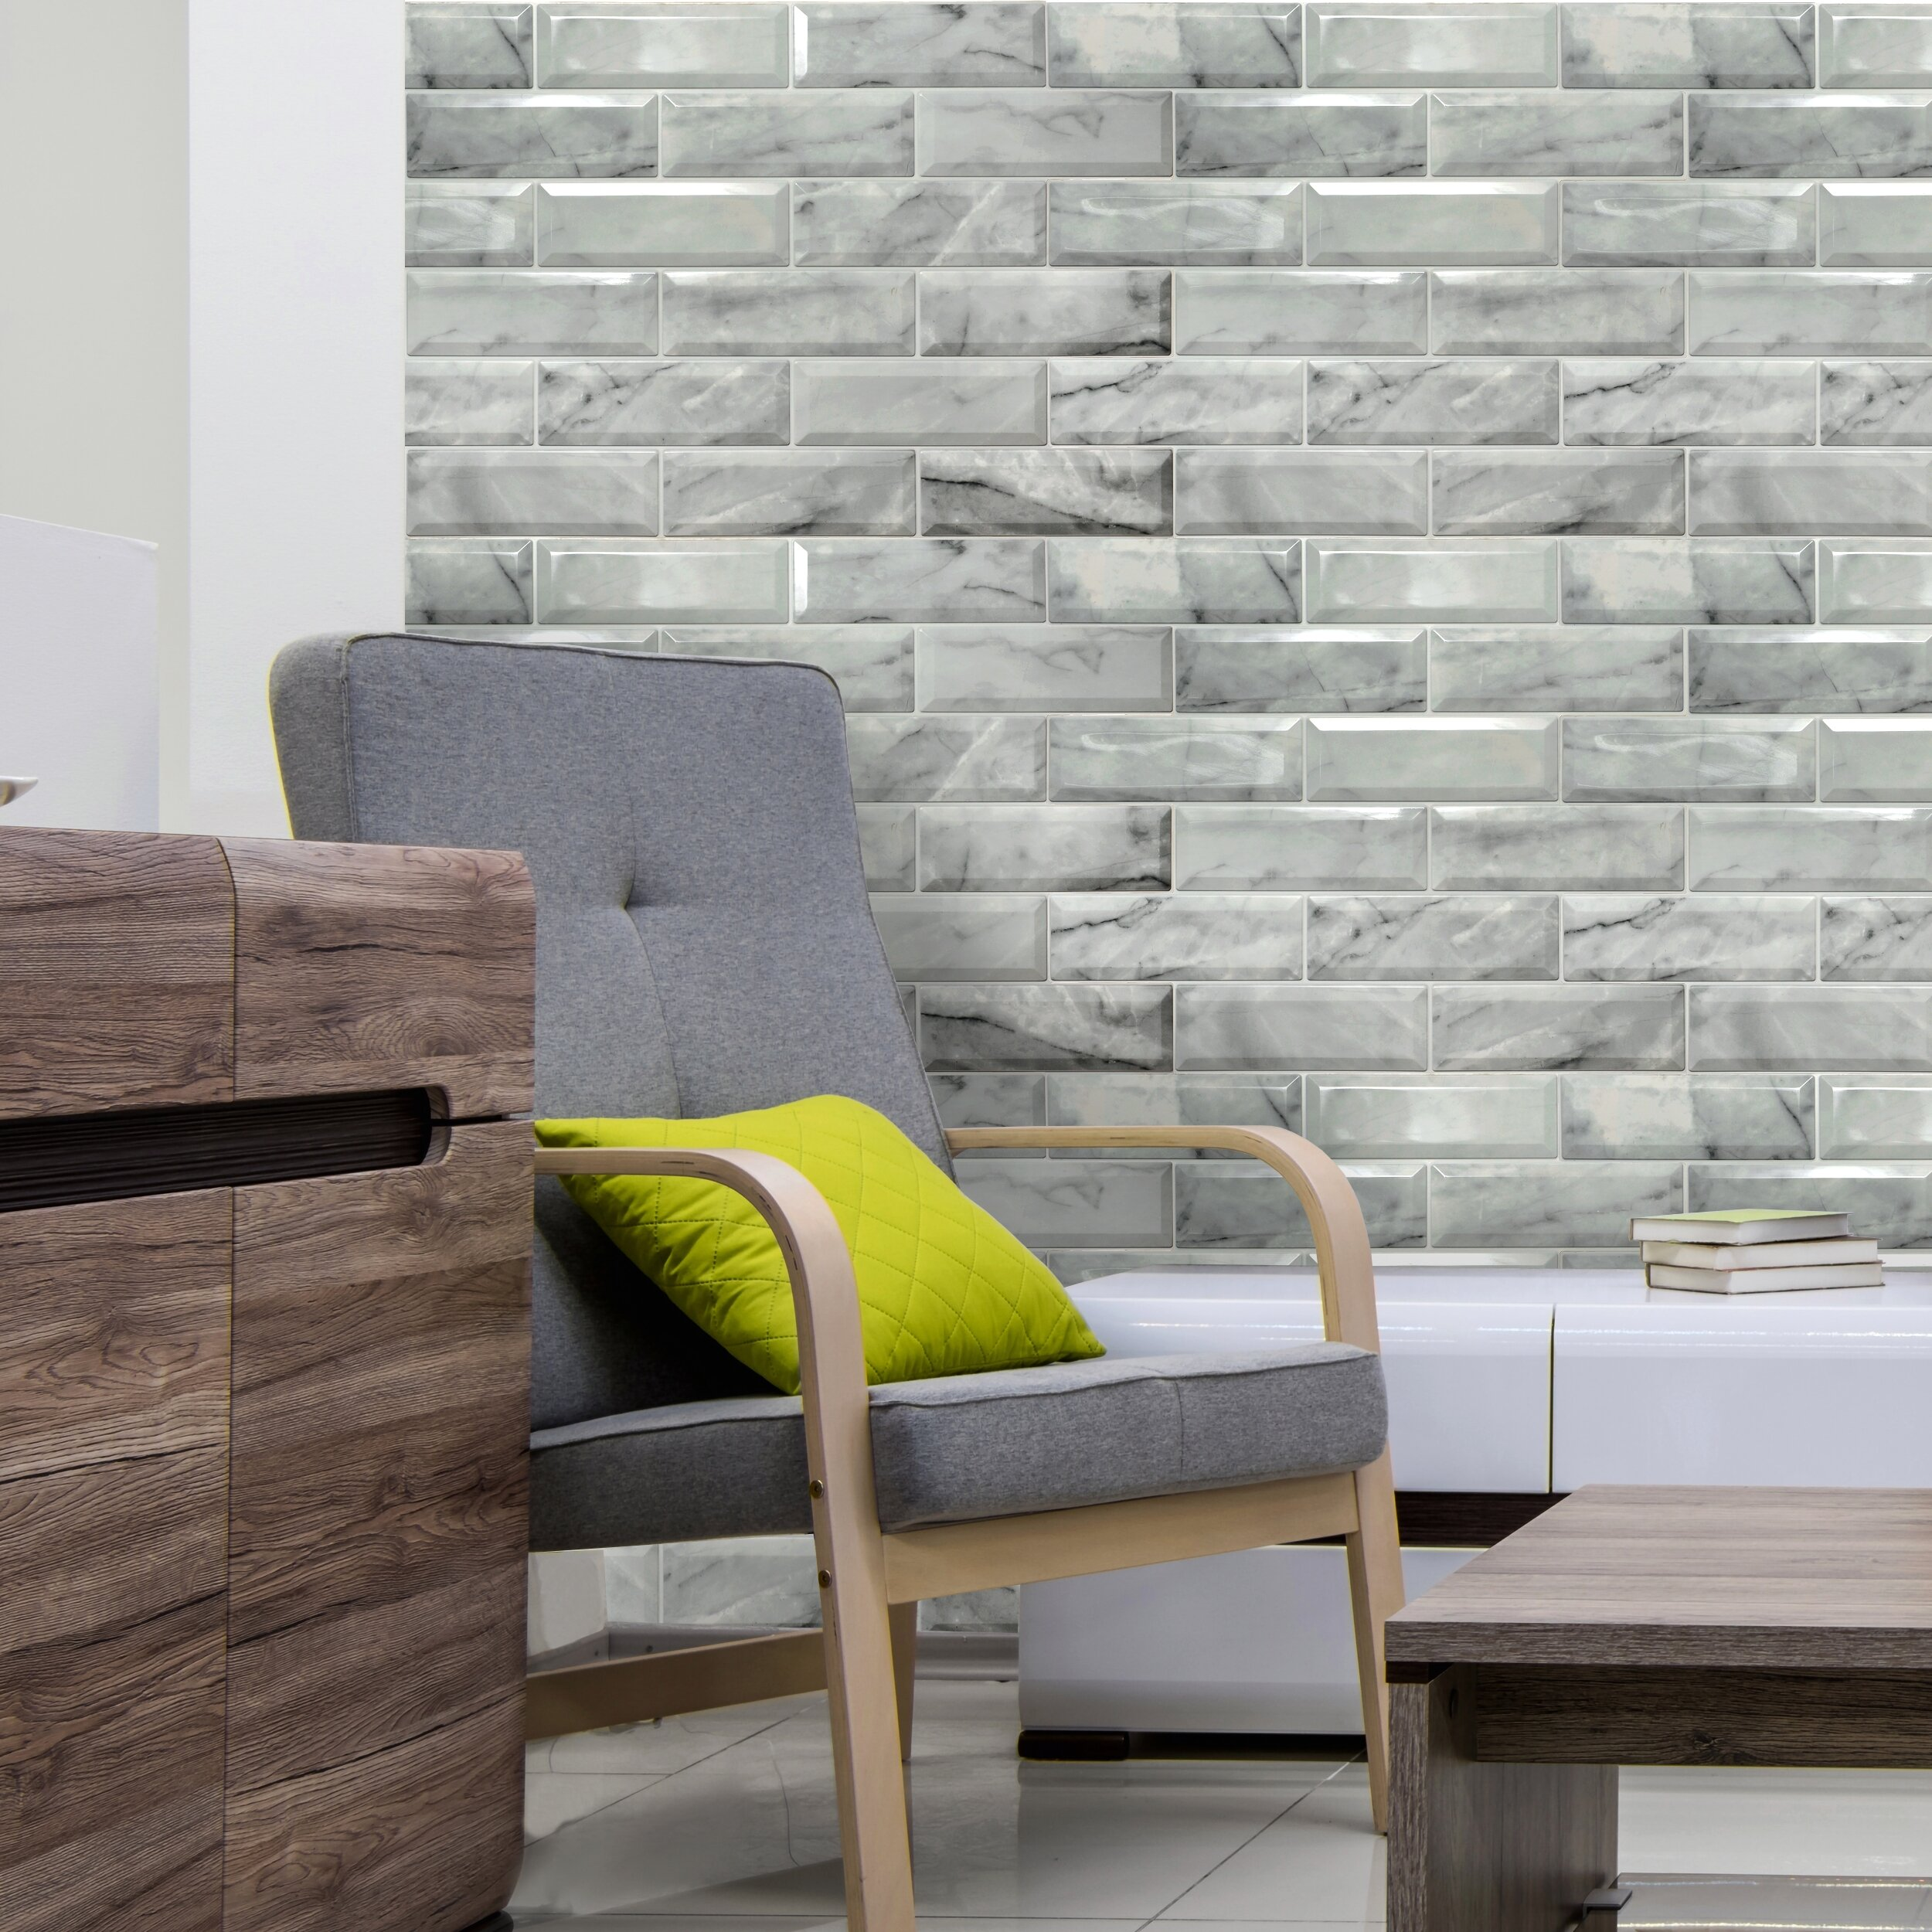 Dundee Deco Off White Faux Marble Bricks Pvc 3d Wall Panel Interior Design Wall Panelling Decor Commercial And Residential Application 3 3 Ft X 2 Ft 6 4 Sq Ft